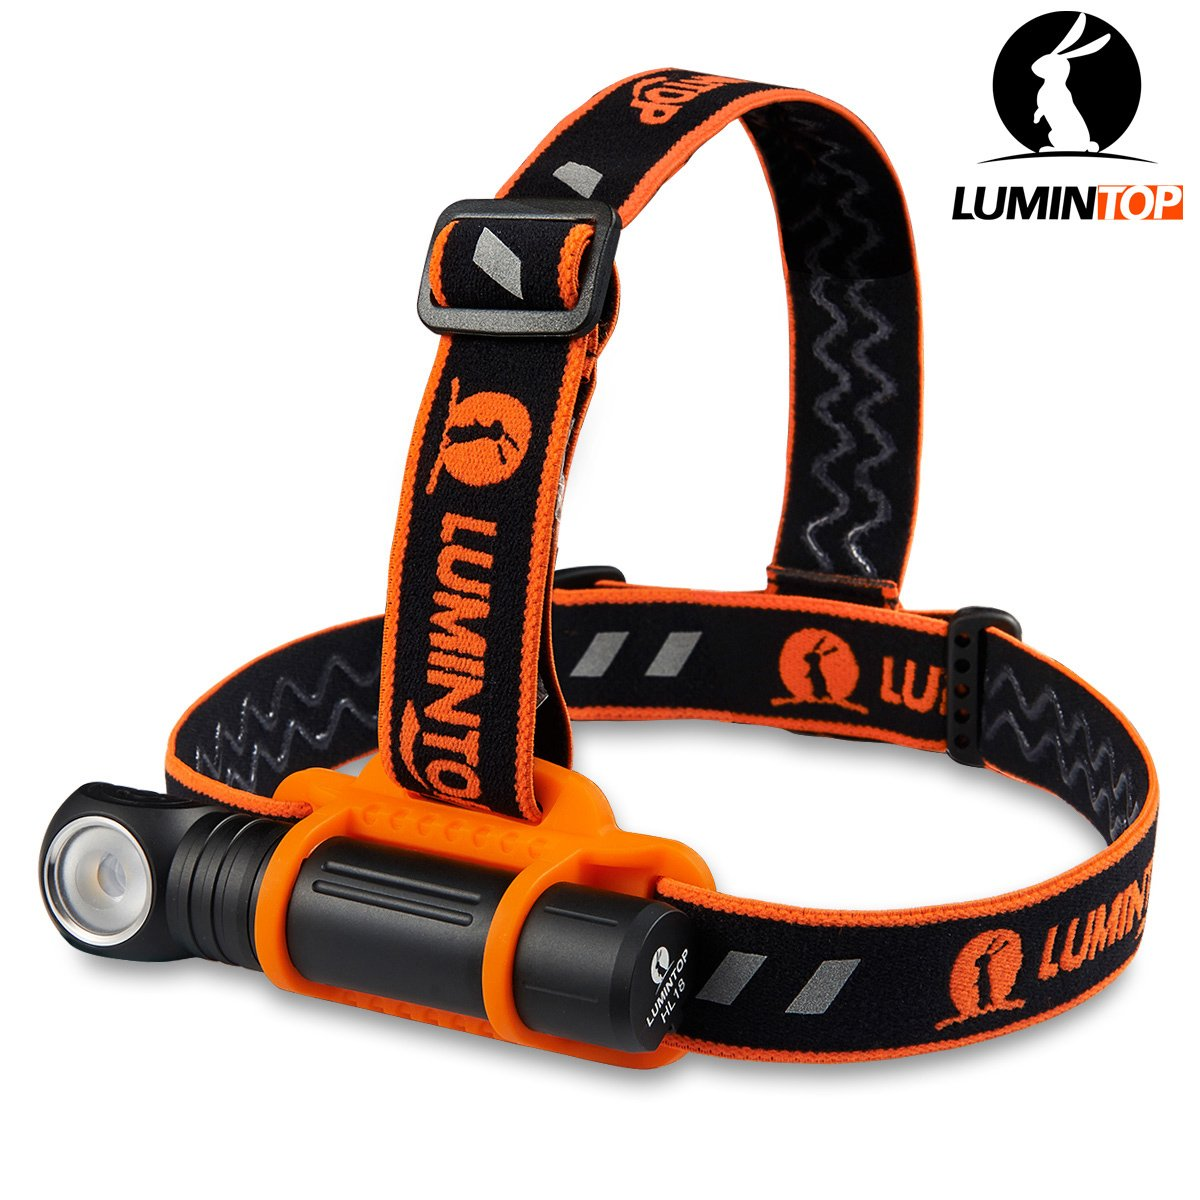 LUMINTOP HL18 950 Lumens Rechargeable LED Super Bright Headlamp with 18650 Battery+Magetic Tail Anti-slip